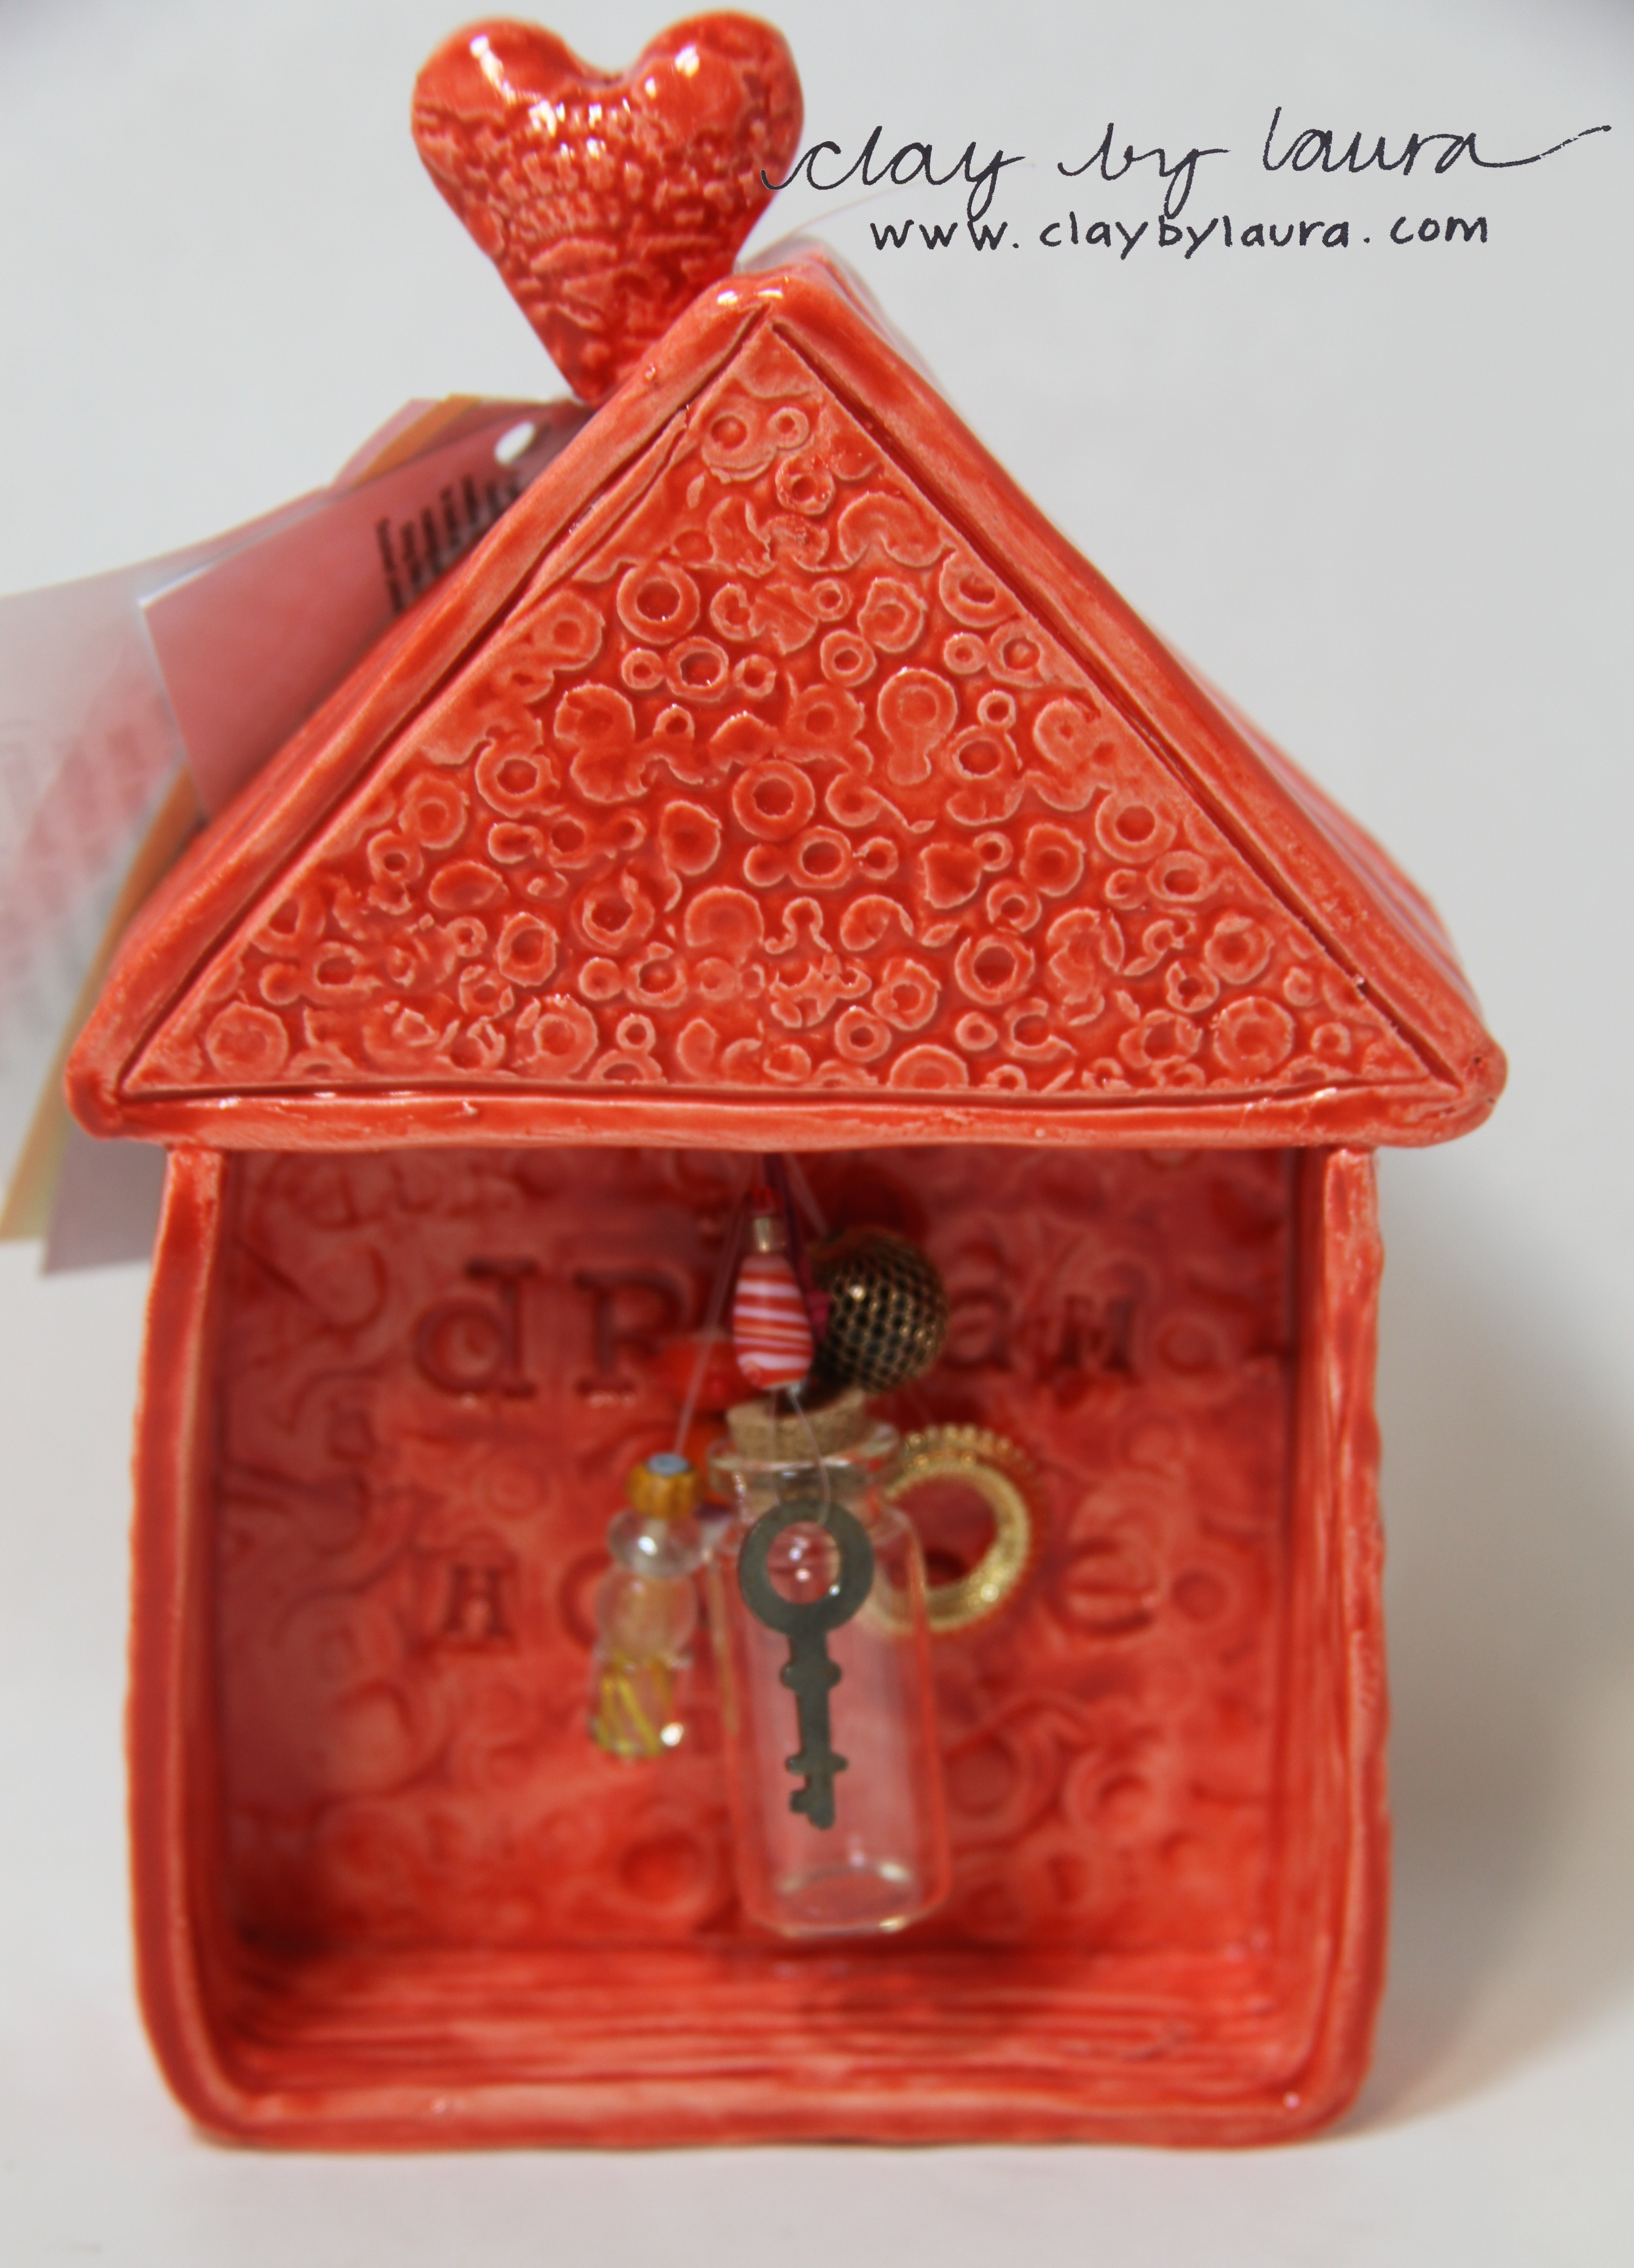 The owner of this 'Dream House' can store any hopes, wishes or dreams written on a slip of paper and placed in the glass vial. Spend $104 to send one of these to your Valentine.